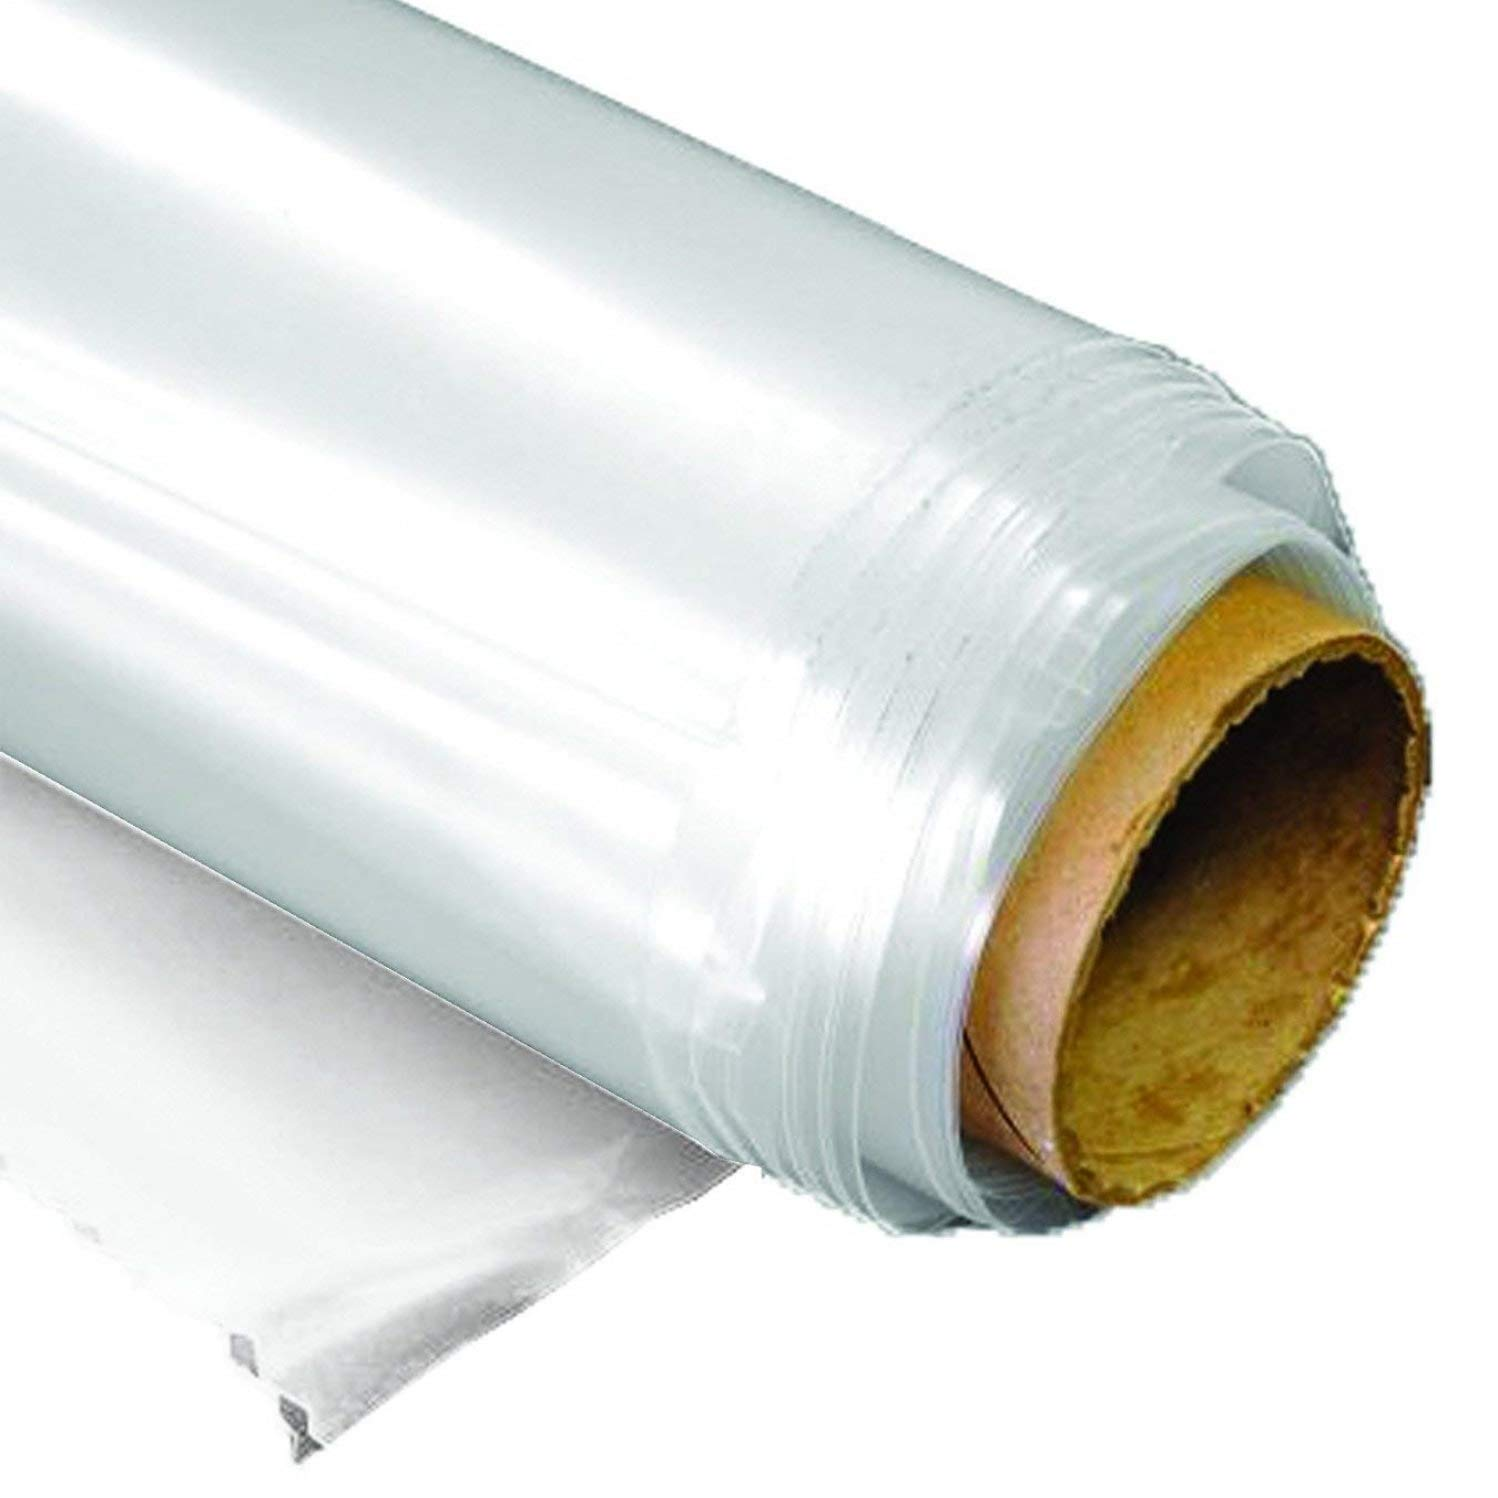 Greenhouse Film Clear 6 mil, 4 year, polyethylene plastic, 16ft x 100ft